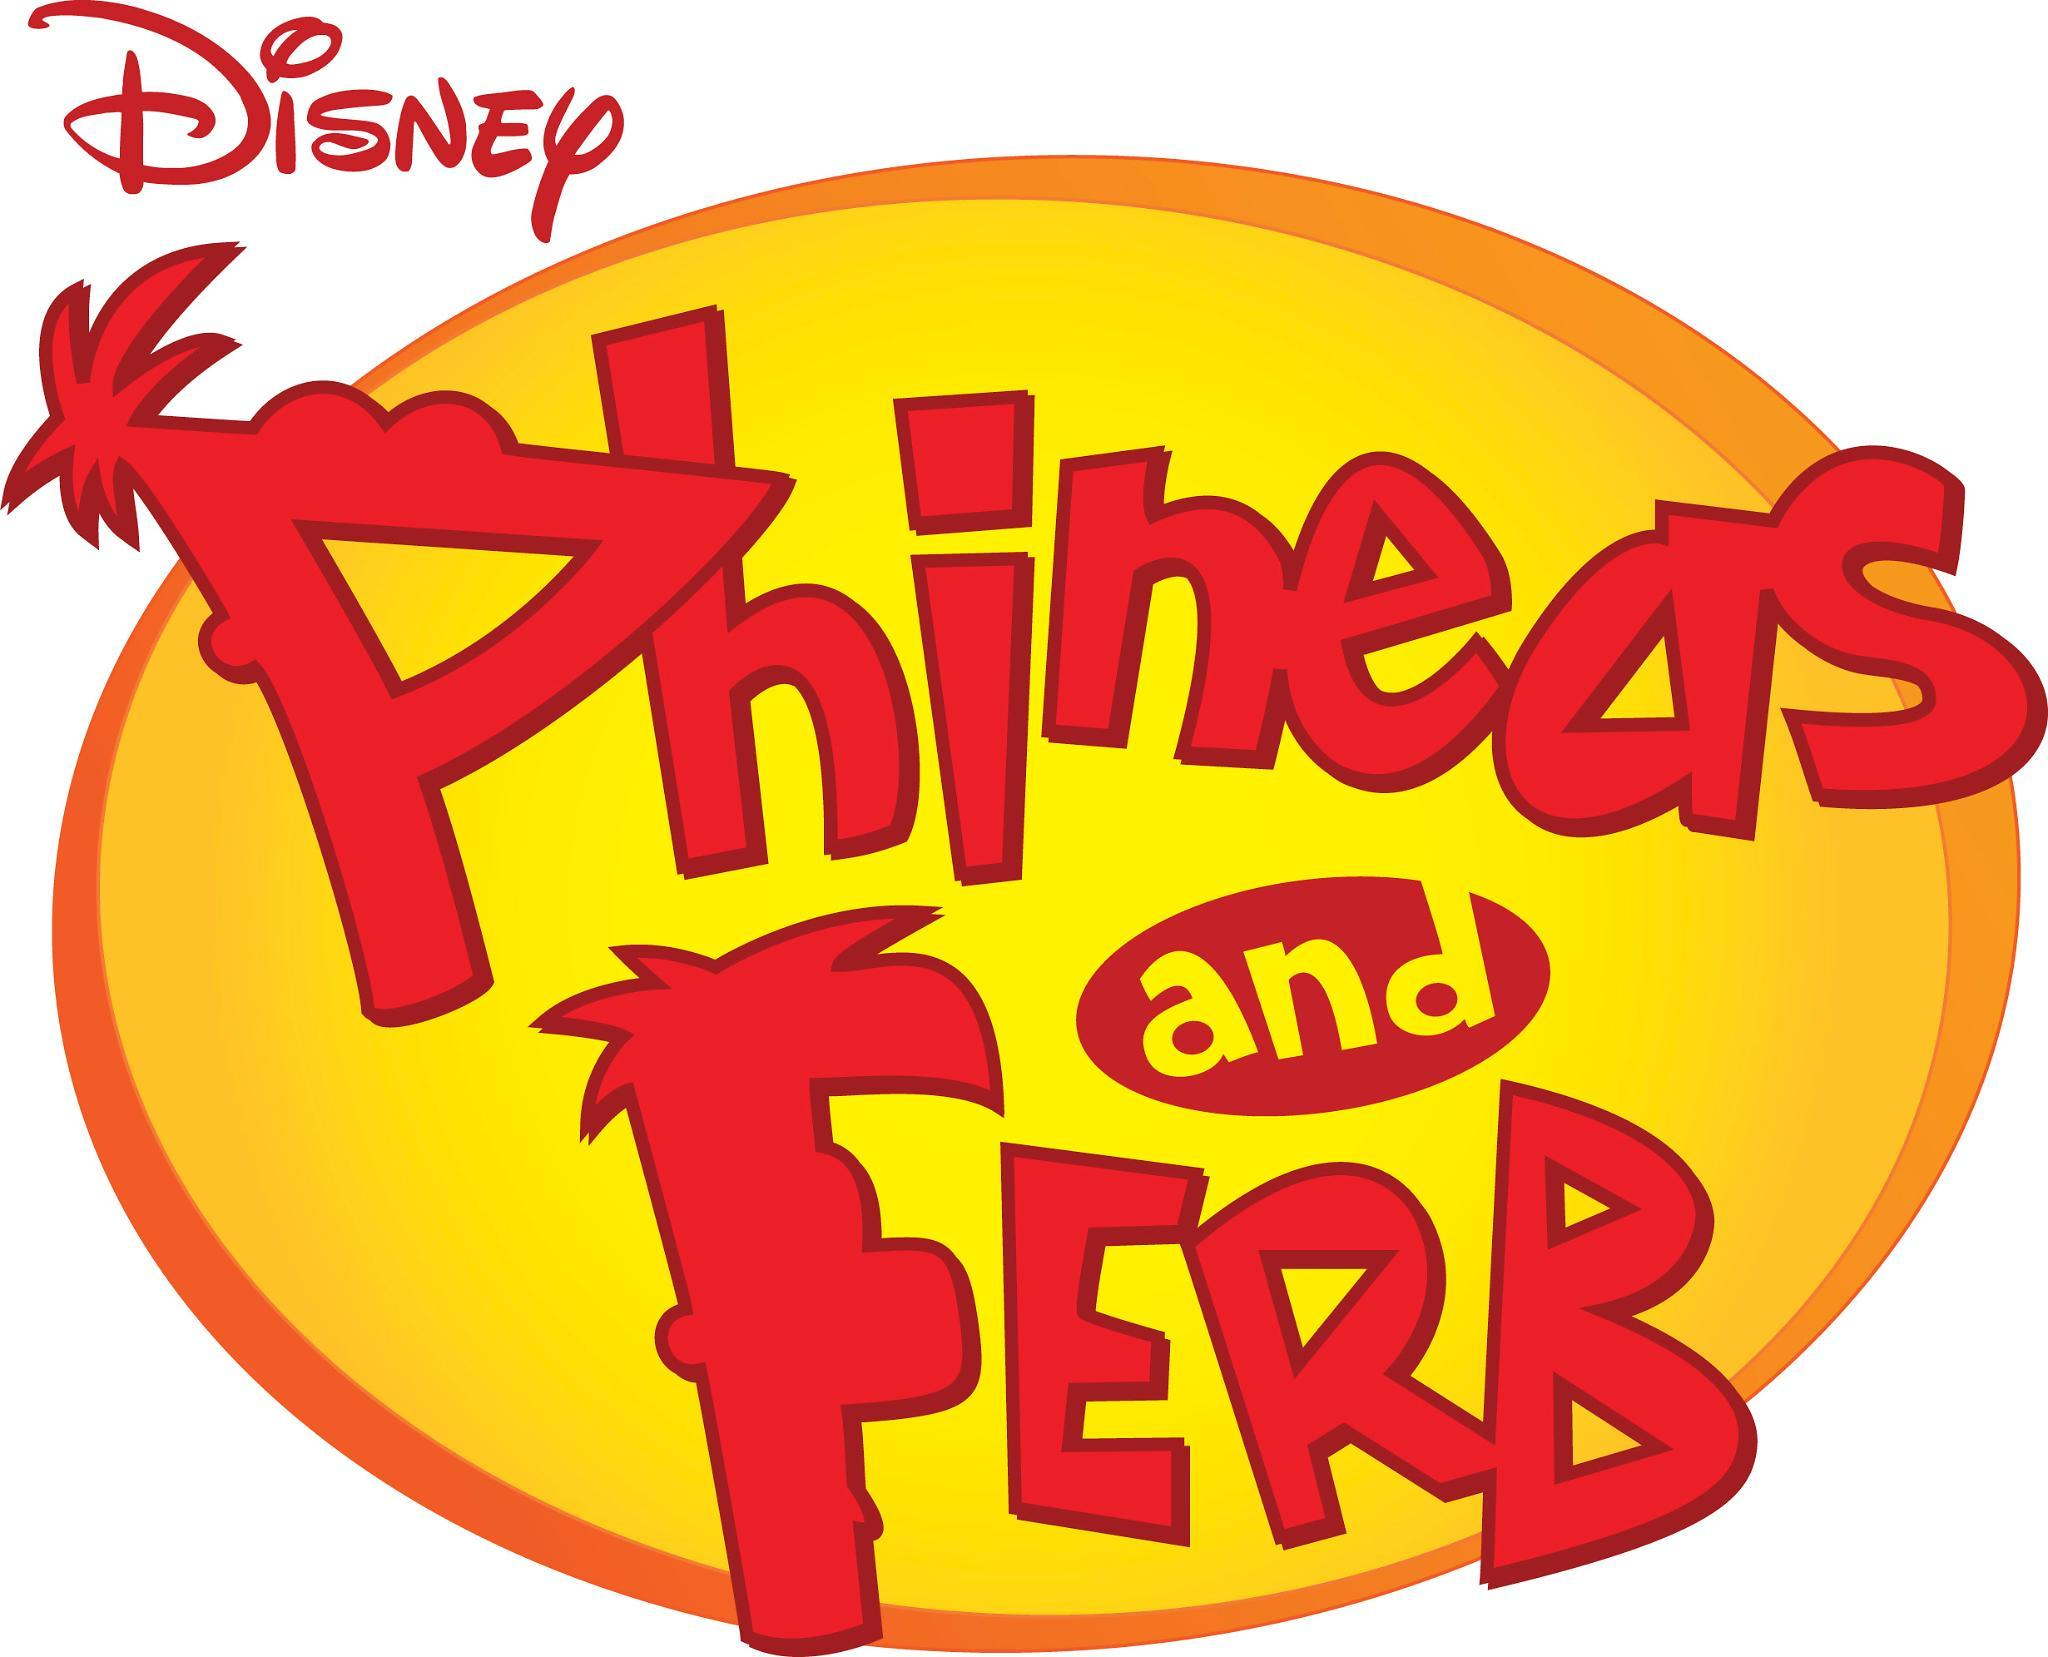 Which phineas and ferb character are you??? :)